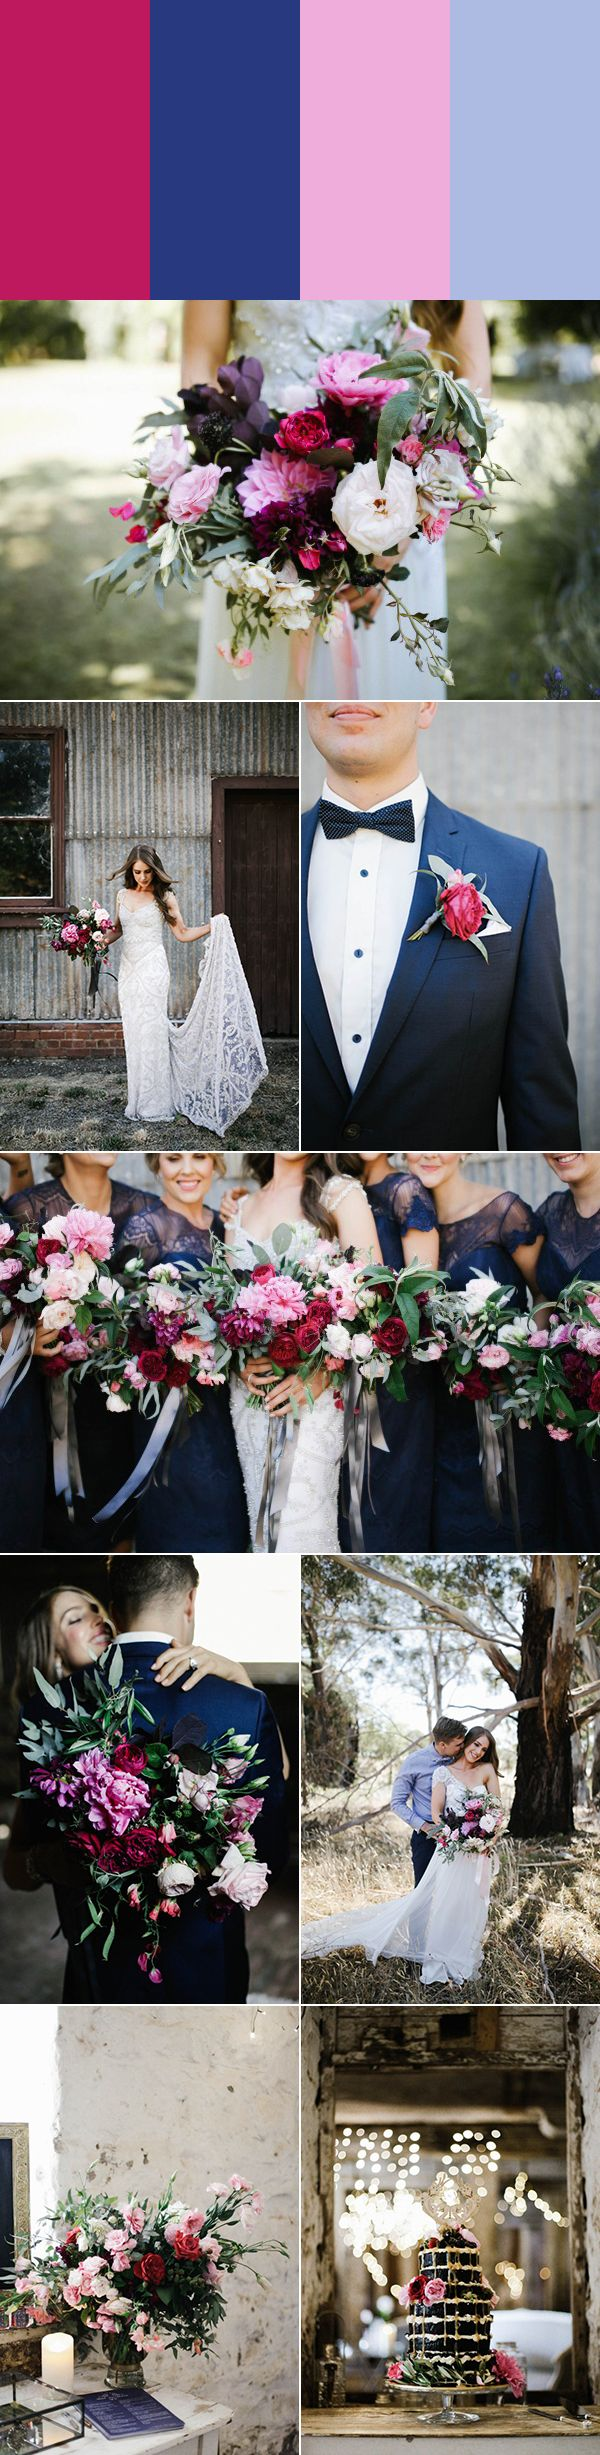 Best 25+ Navy wedding colors ideas on Pinterest | Navy weddings ...